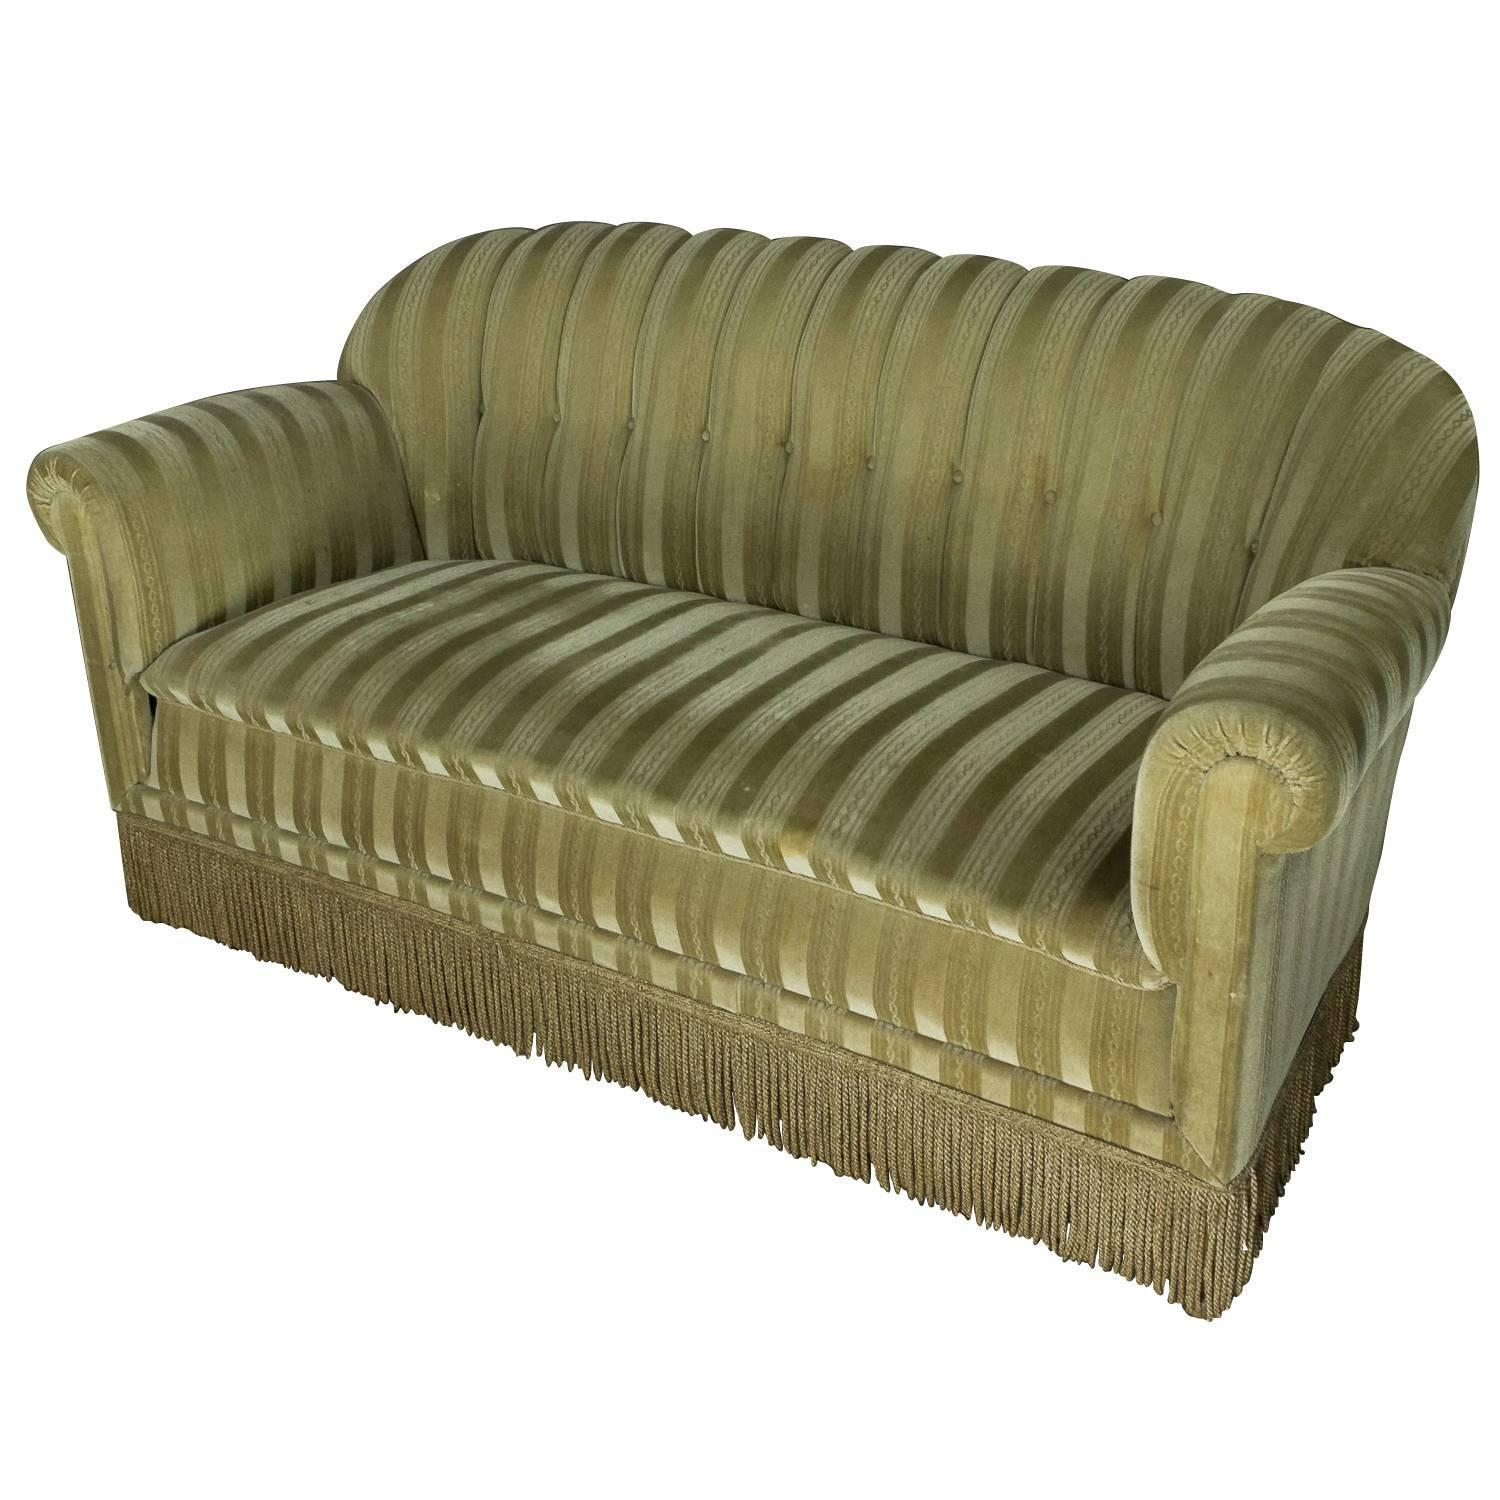 1930S Mohair Sofa At 1Stdibs Within 1930S Sofas (Image 5 of 20)